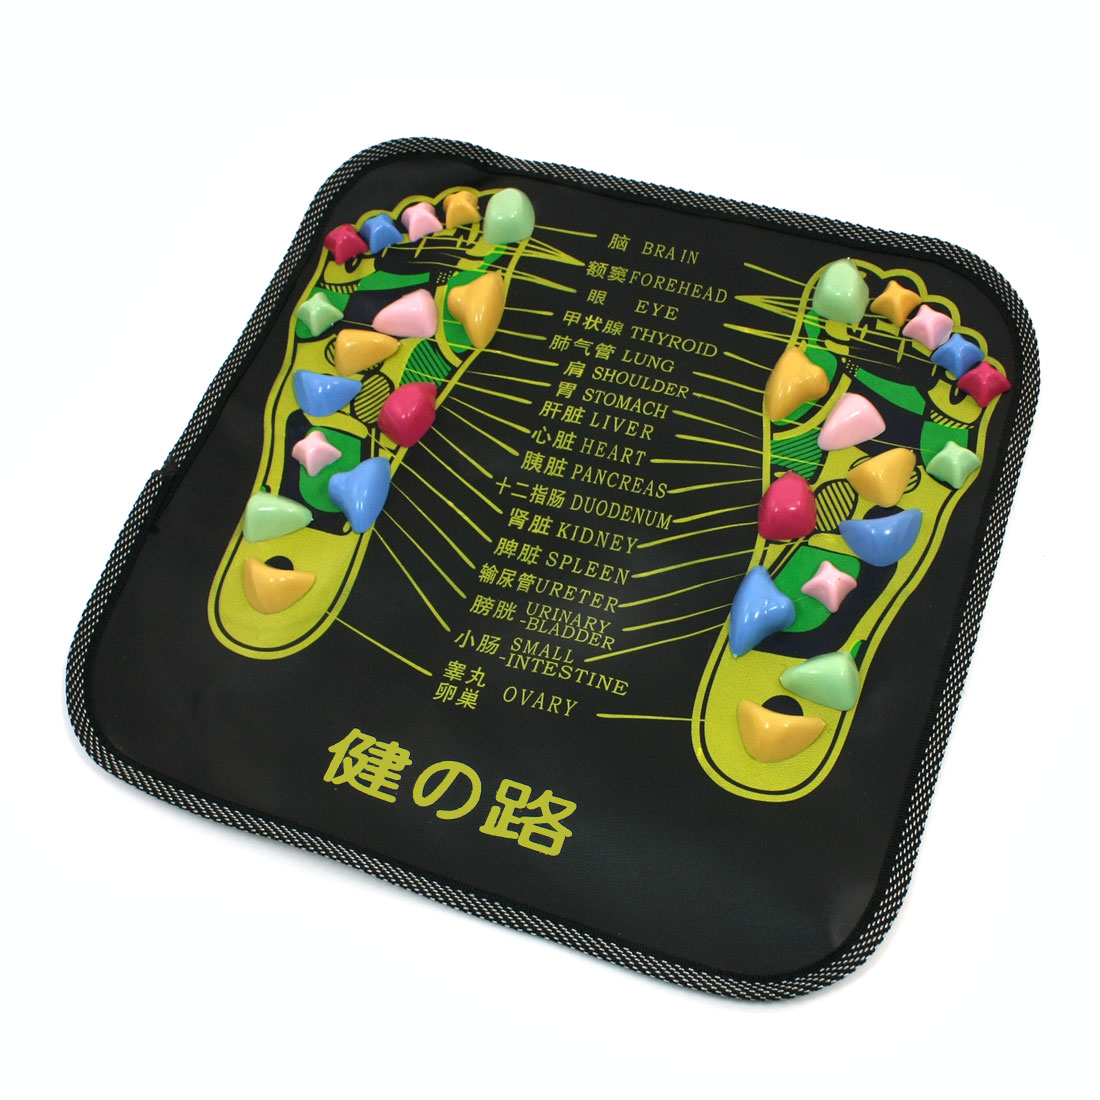 Plastic Walk Stone Square Foot Massage Mat Pad Cushion Colored